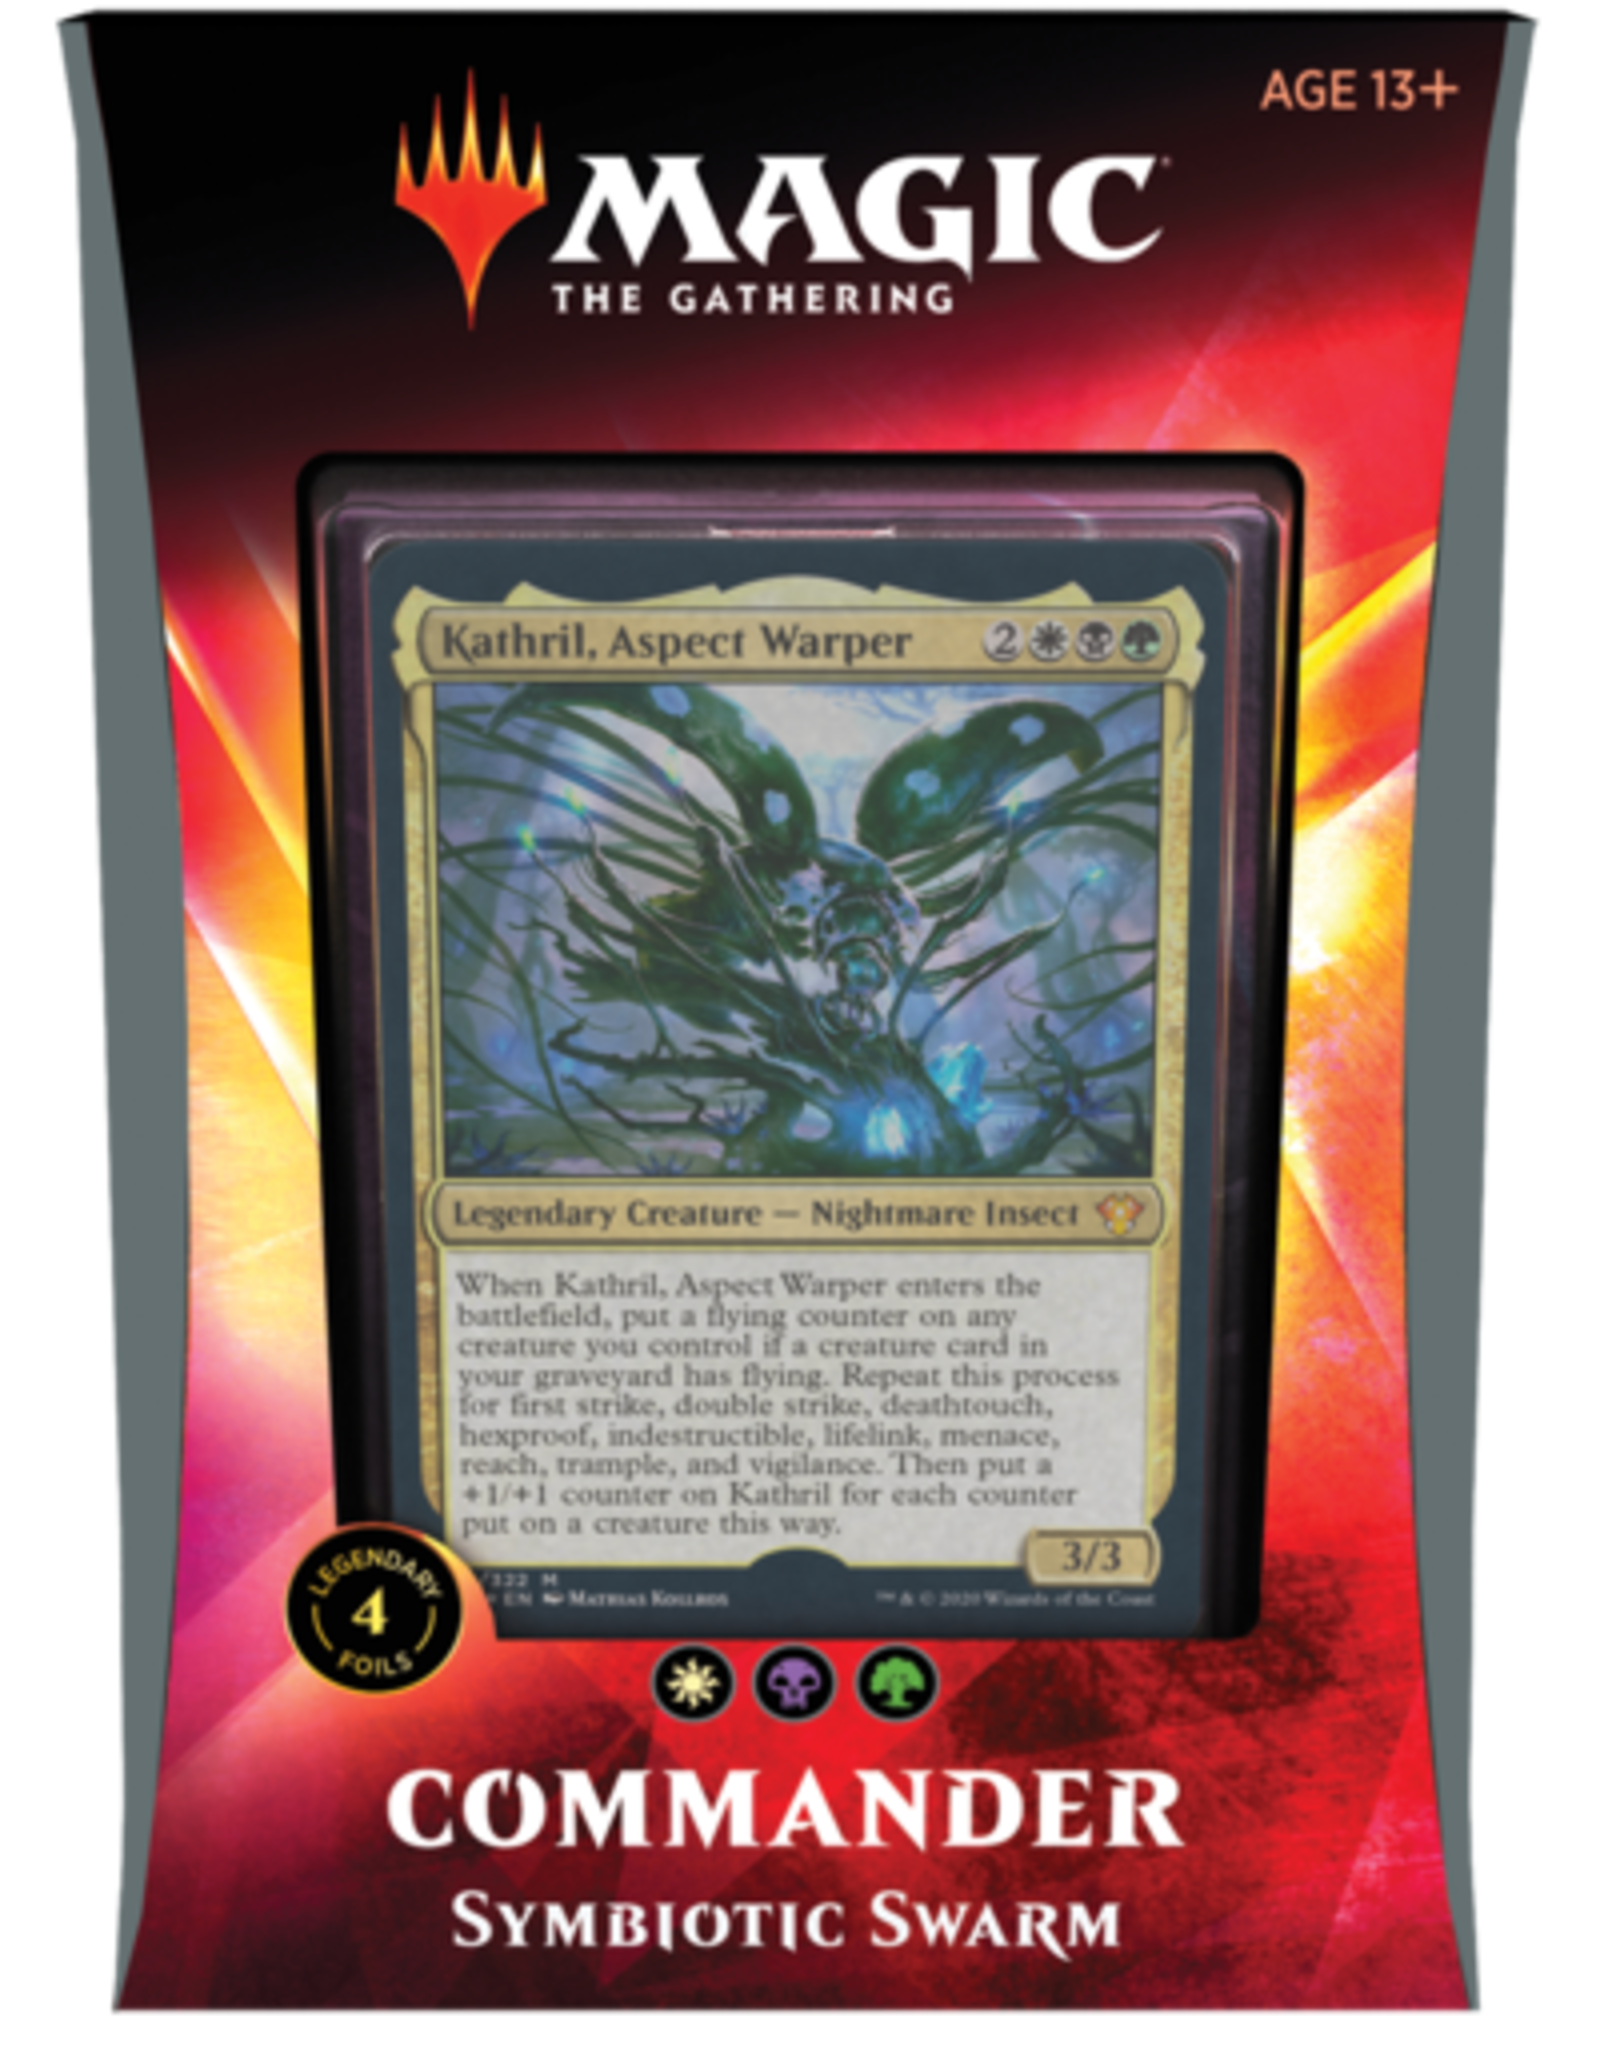 Magic: The Gathering CCG MAGIC THE GATHERING: IKORIA: LAIR OF BEHEMOTHS COMMANDER Deck: Symbiotic Swarm